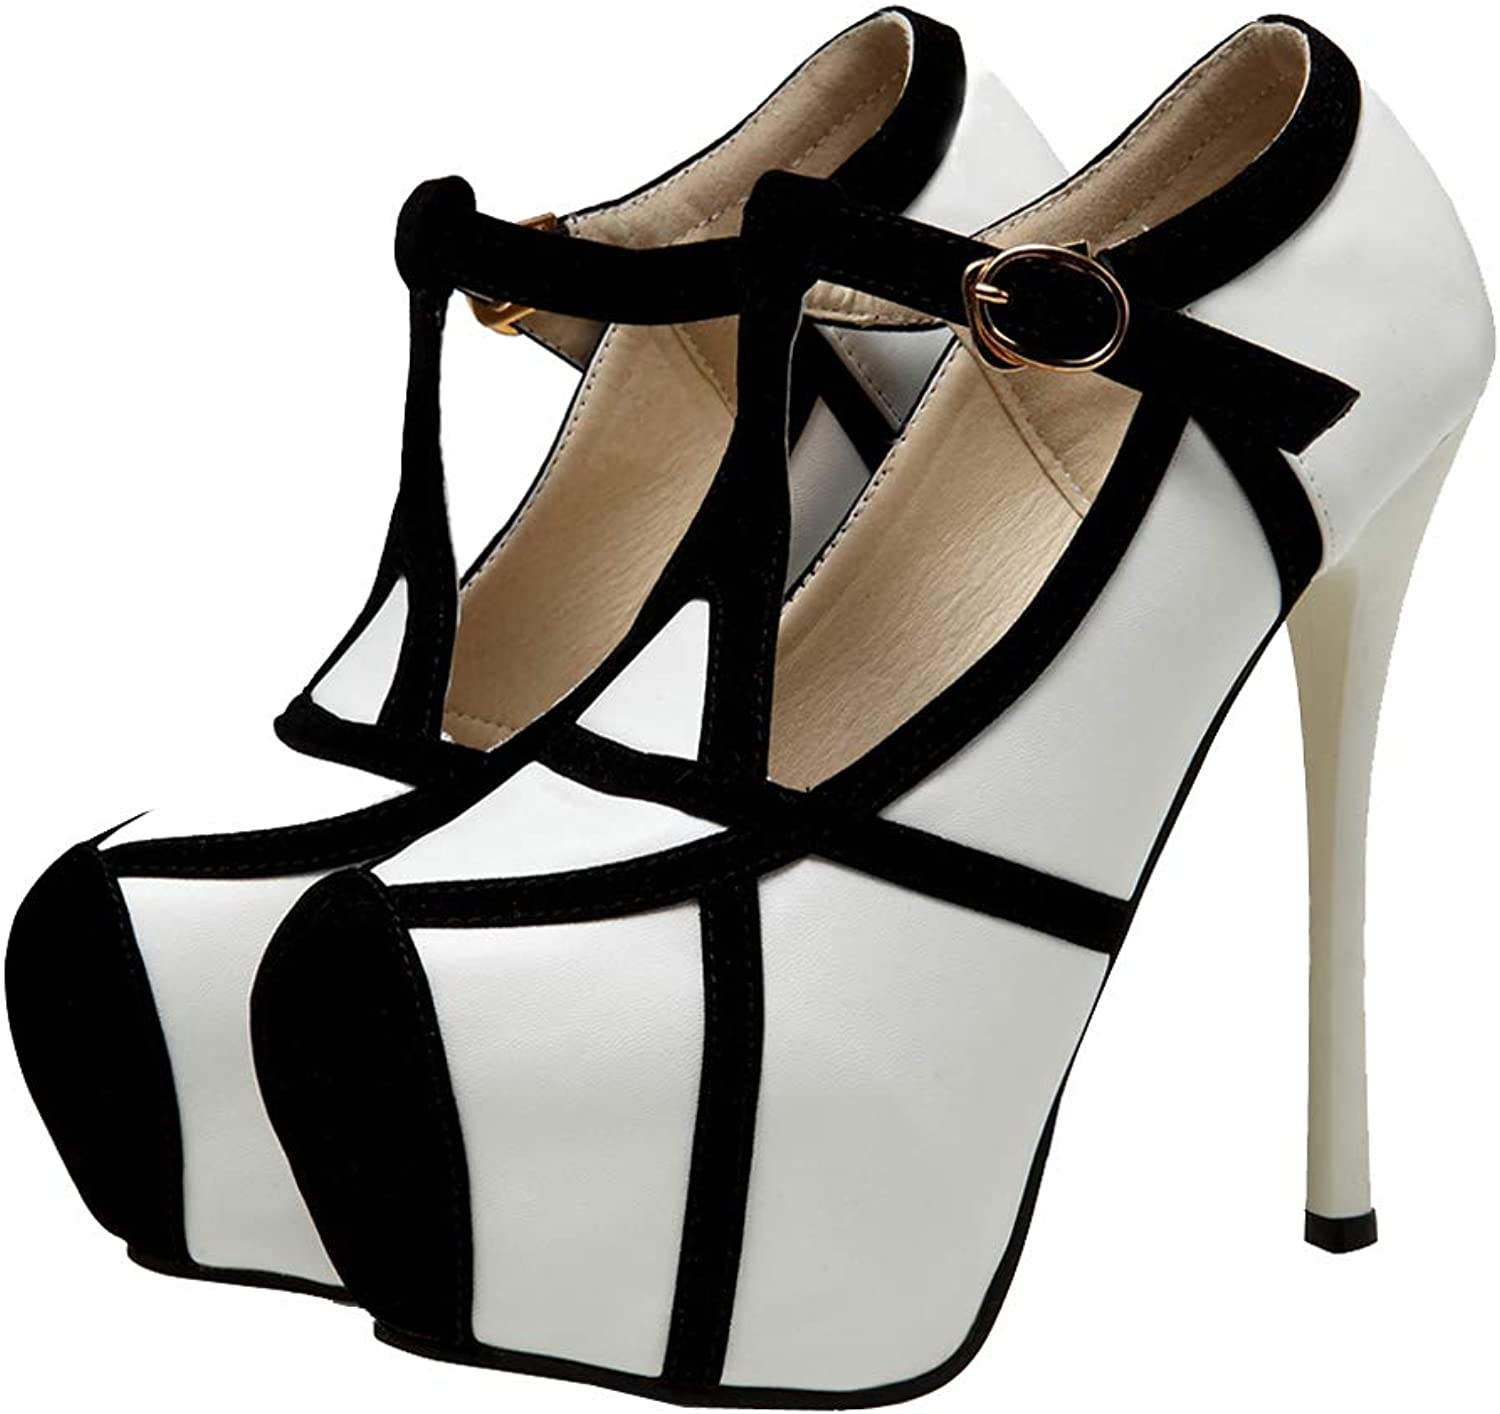 Getmorebeauty Women's White and Black Stiletto Sexy shoes High Heels